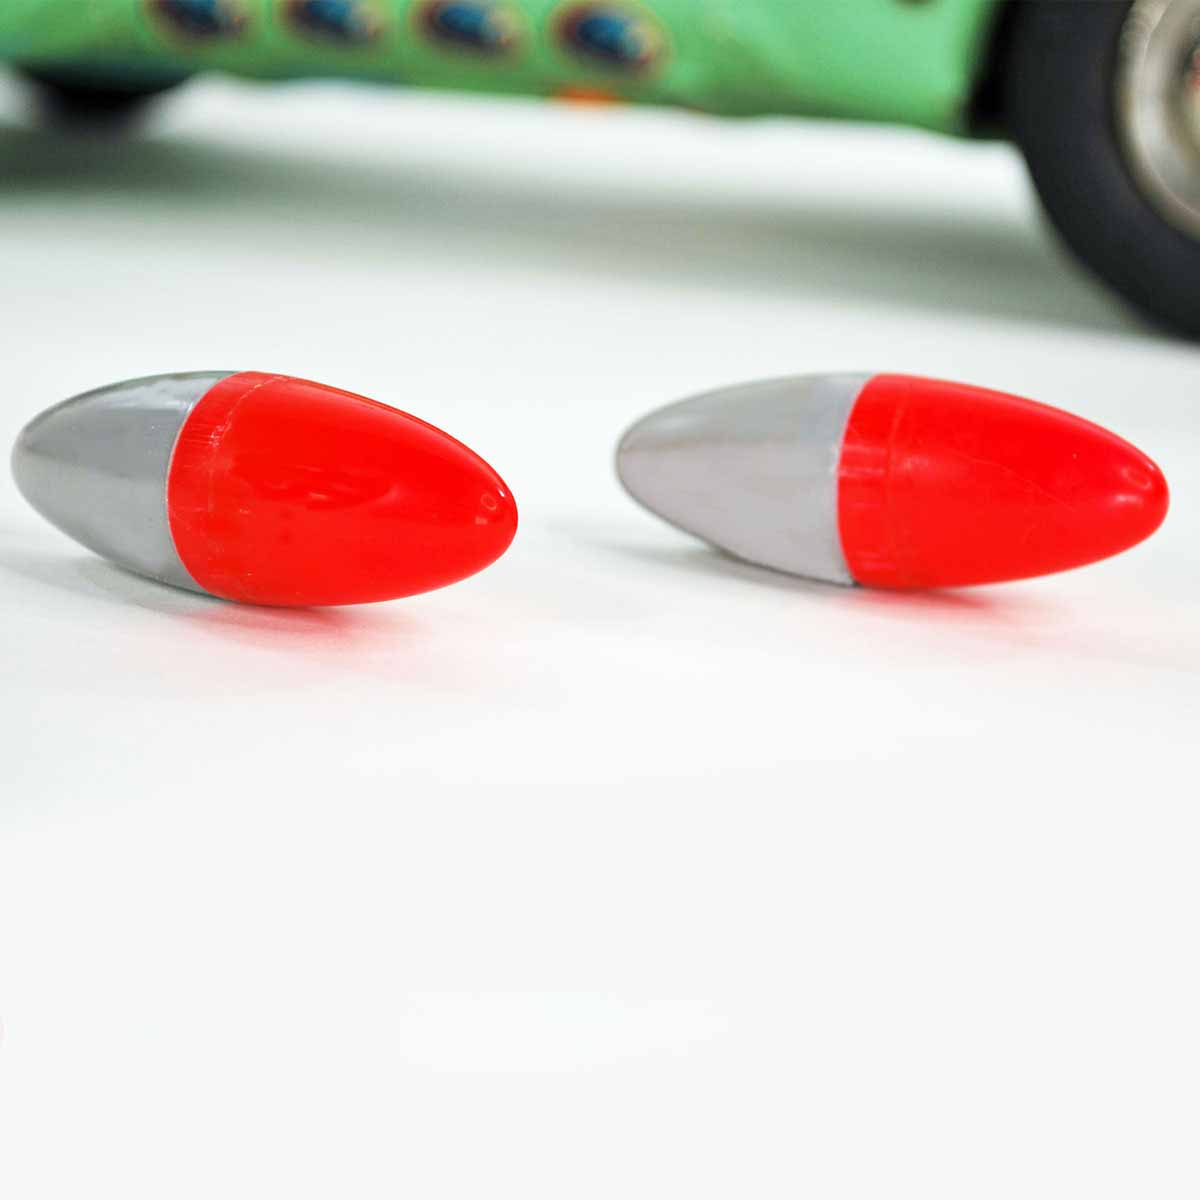 Yonezawa Atom Jet Racer Replacement Two Piece Cowl Light by Uncle Al's Toys